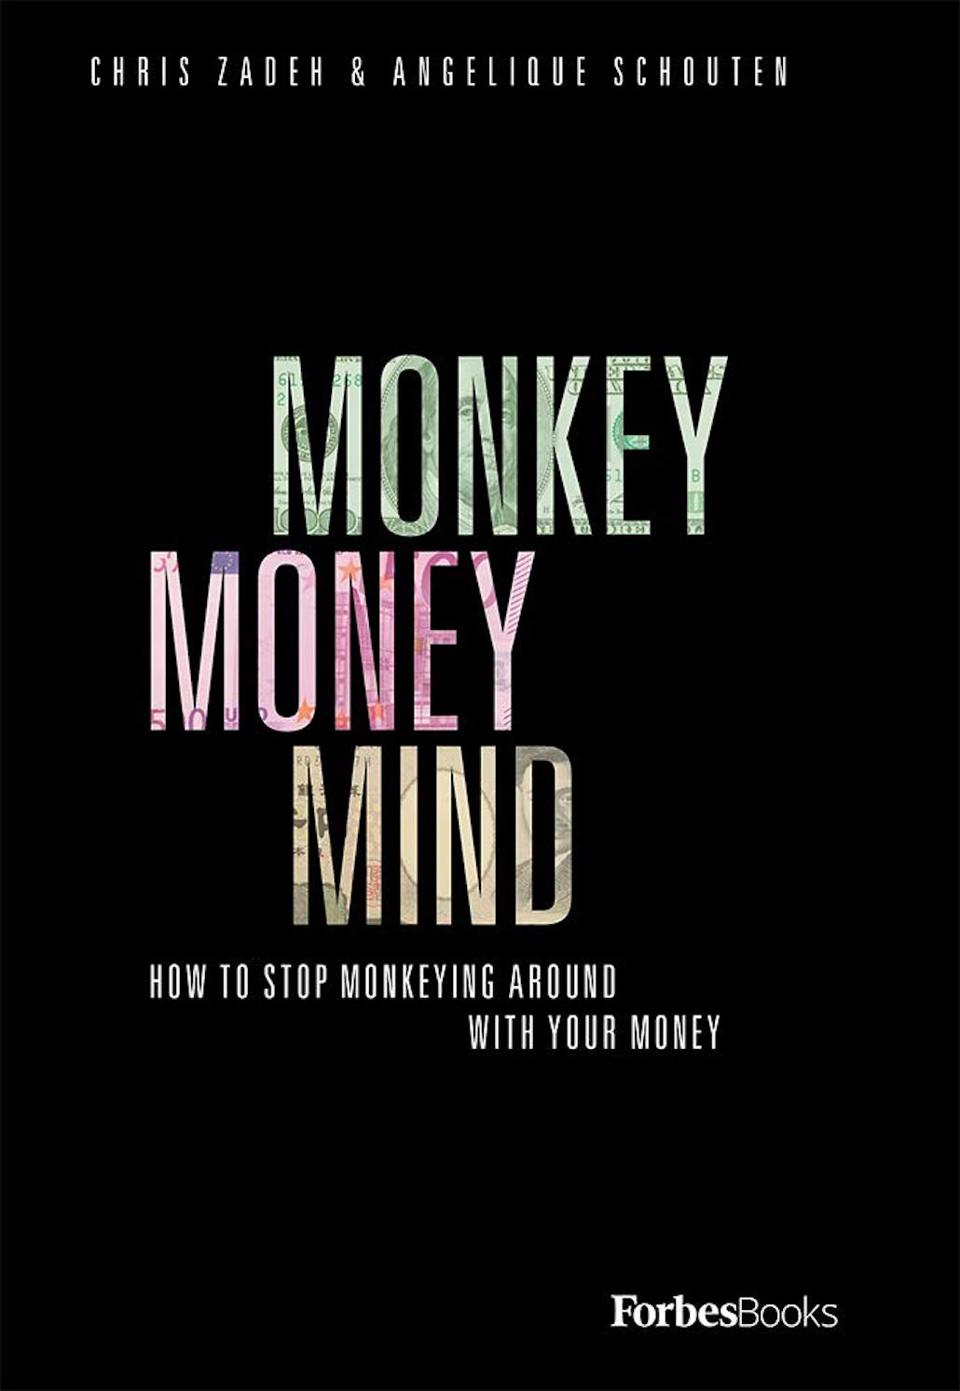 Monkey Money Mind: How To Stop Monkeying Around With Your Money by Chris Zadeh and Angelique Schouten